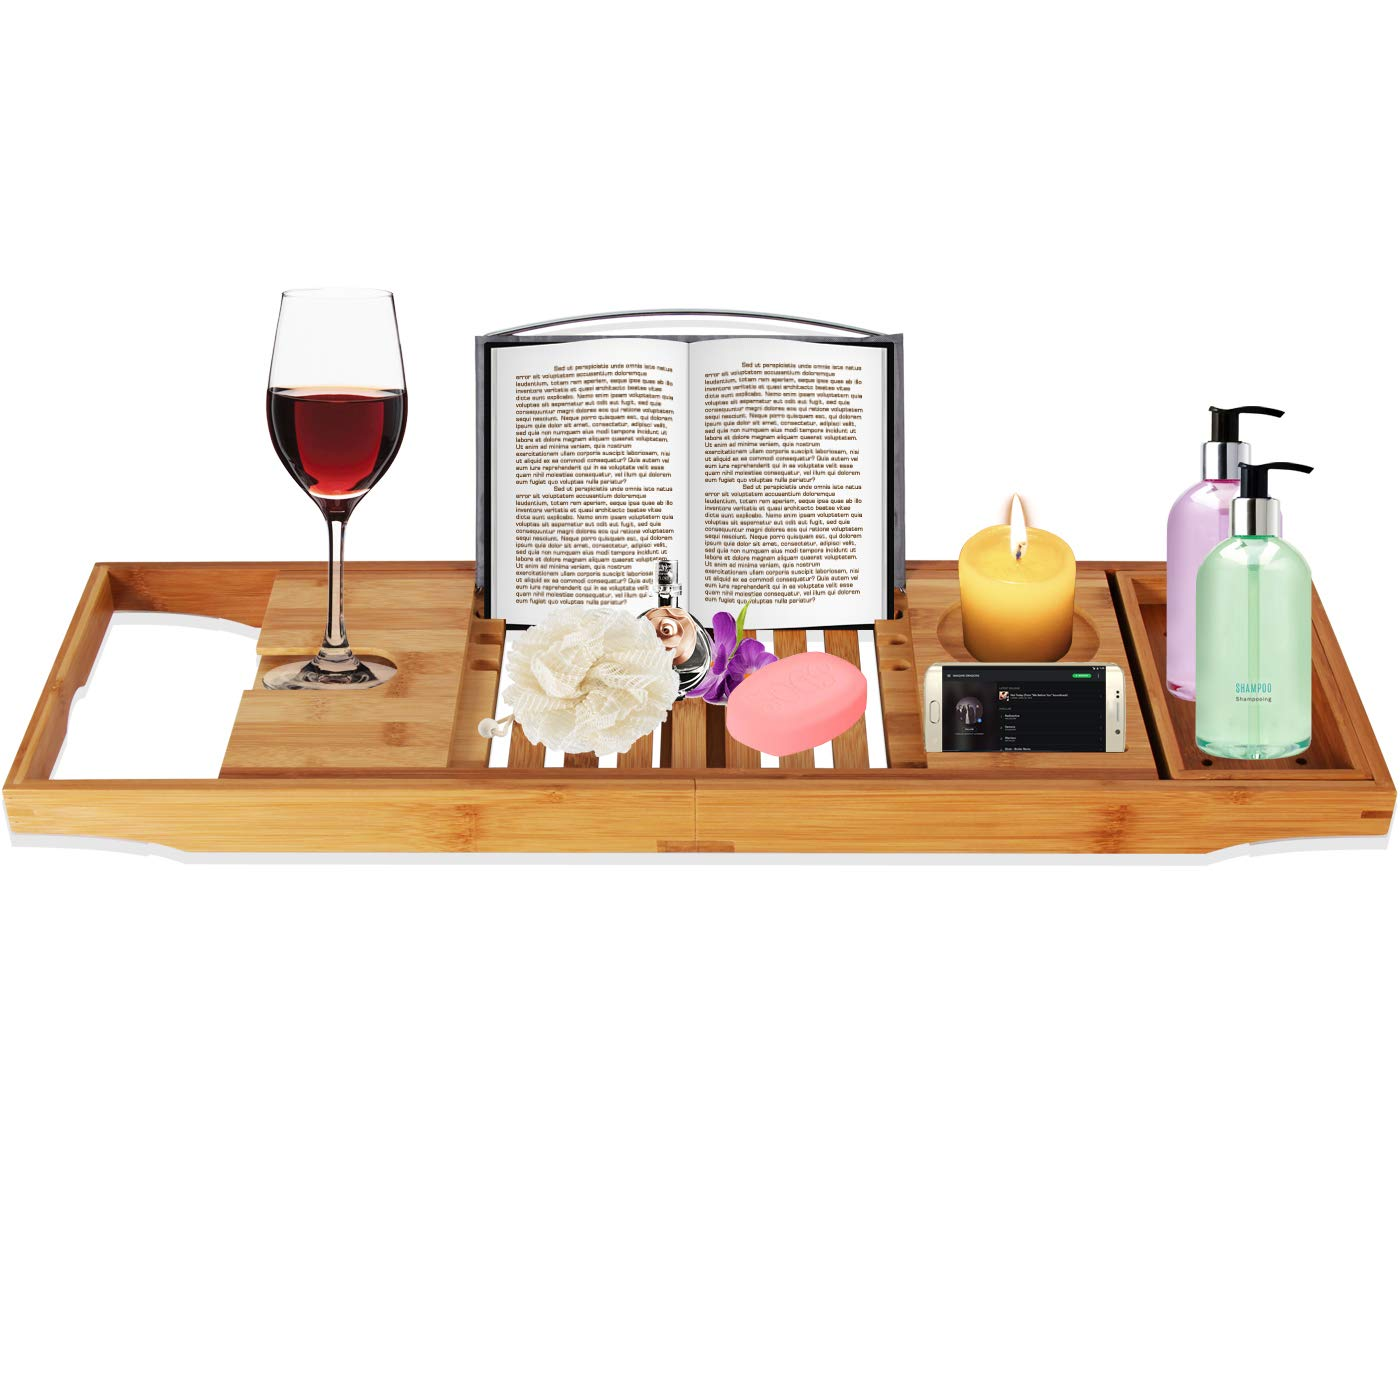 Draizee Adjustable Natural Bamboo Bathtub Caddy Tray with Reading Rack | Tablet Holder | Cellphone Tray | Wine Glass Holder| Waterproof Bathroom Vanity Organizer | Decorative Storage Accessories Tray by Draizee (Image #1)